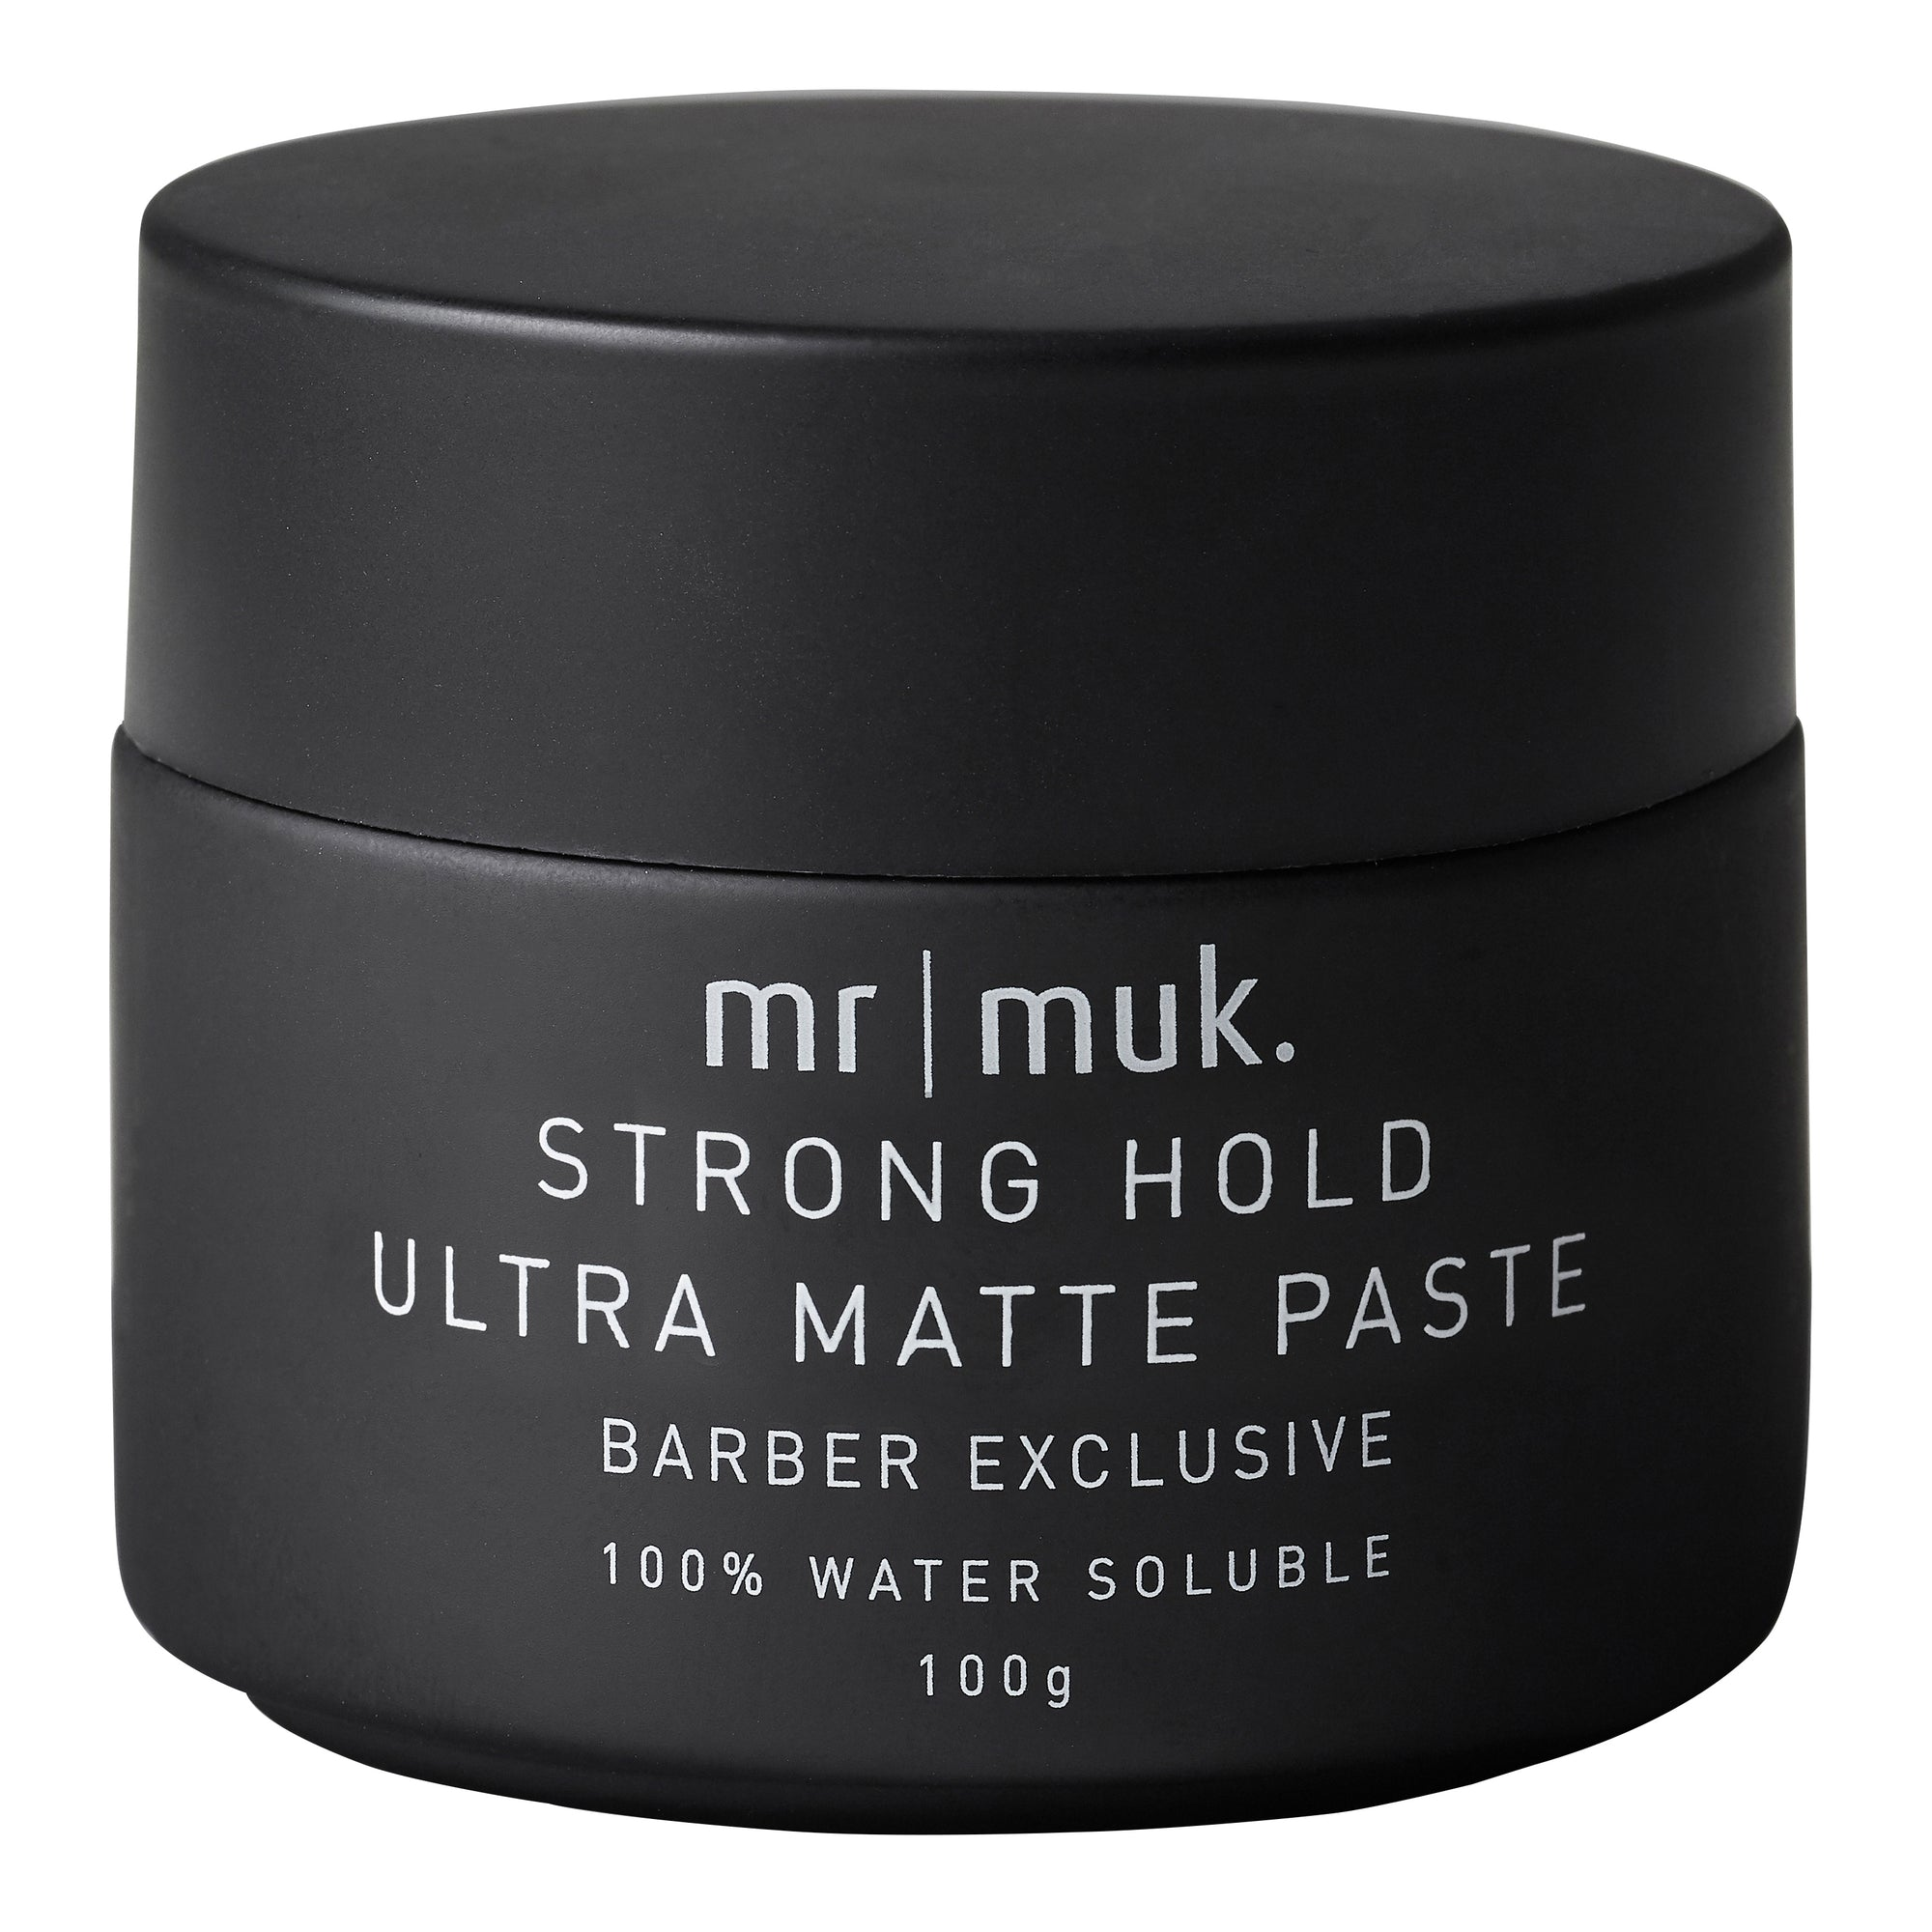 STRONG HOLD ULTRA MATTE PASTE